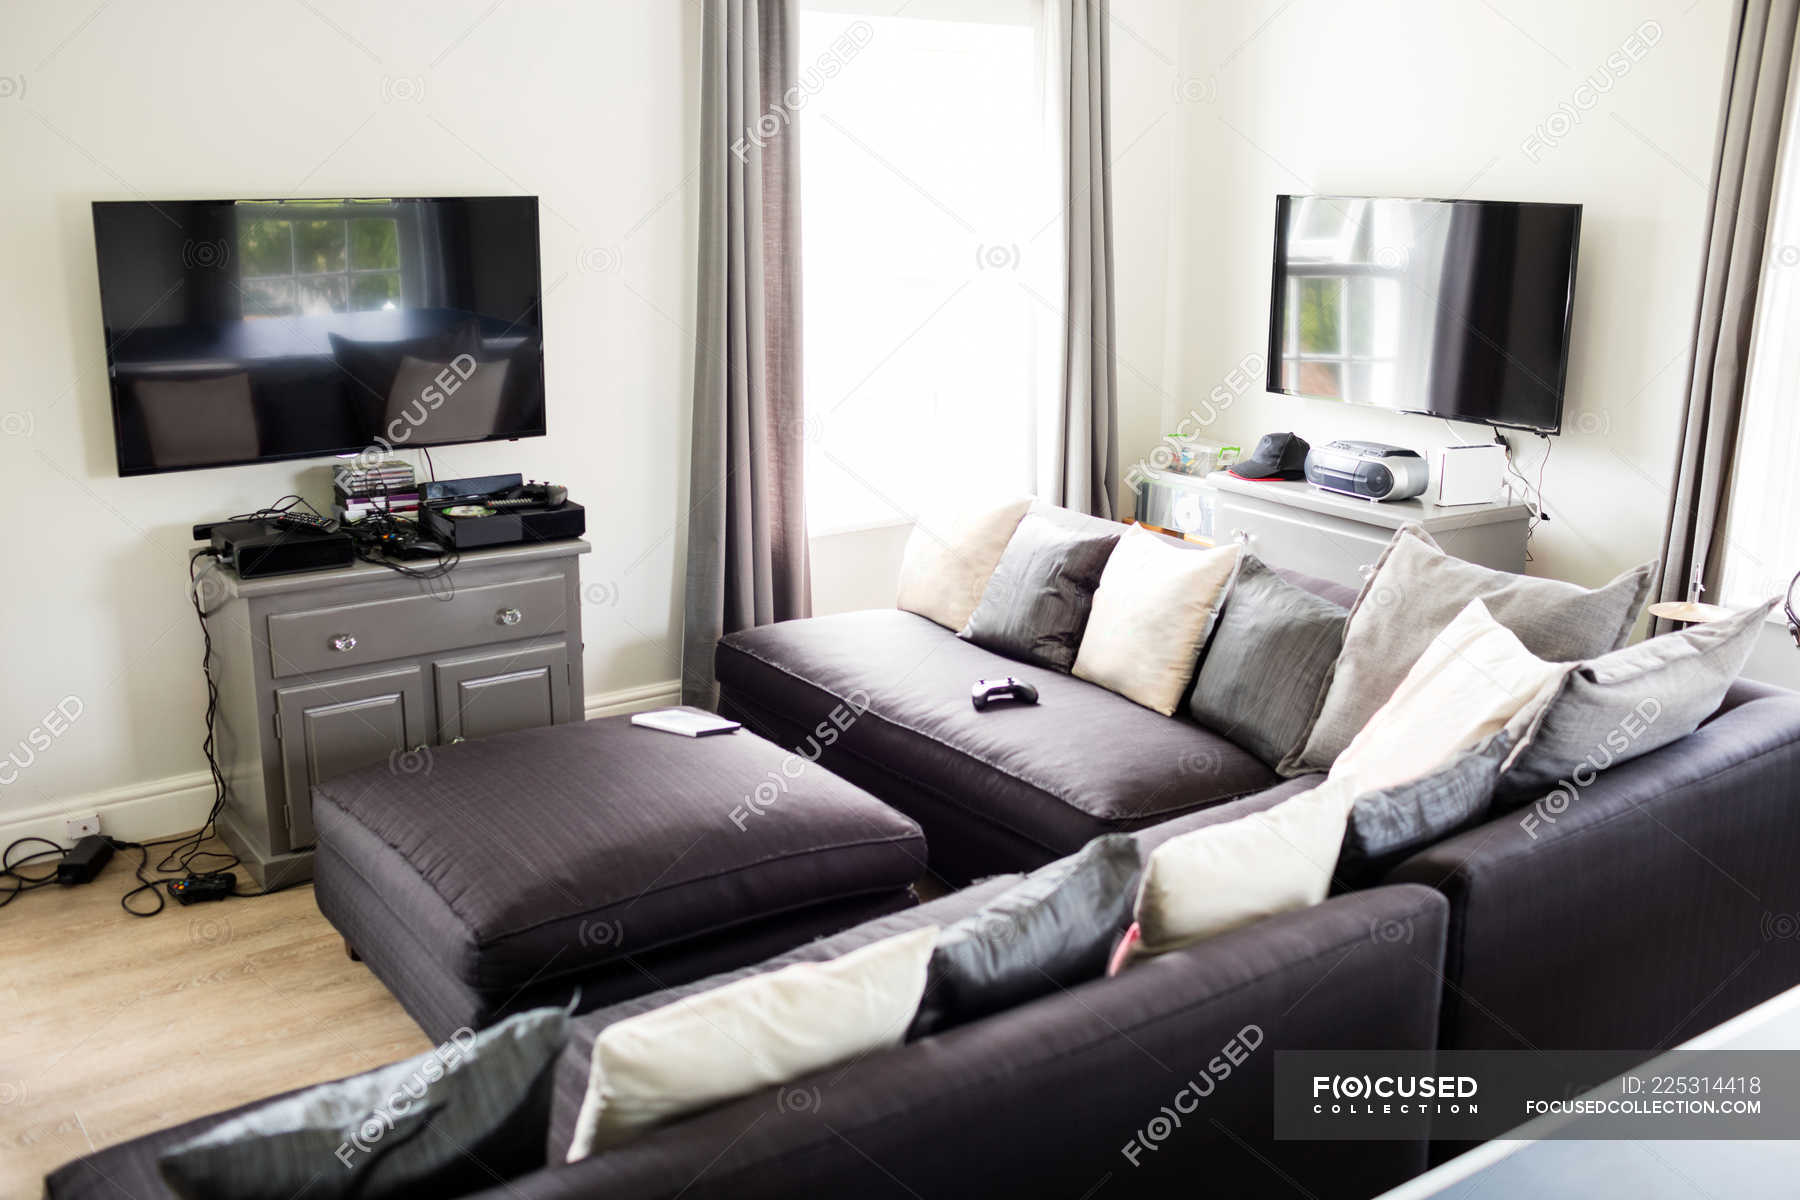 Empty Living Room With Sofa And Television At Home Stylish Residential Stock Photo 225314418